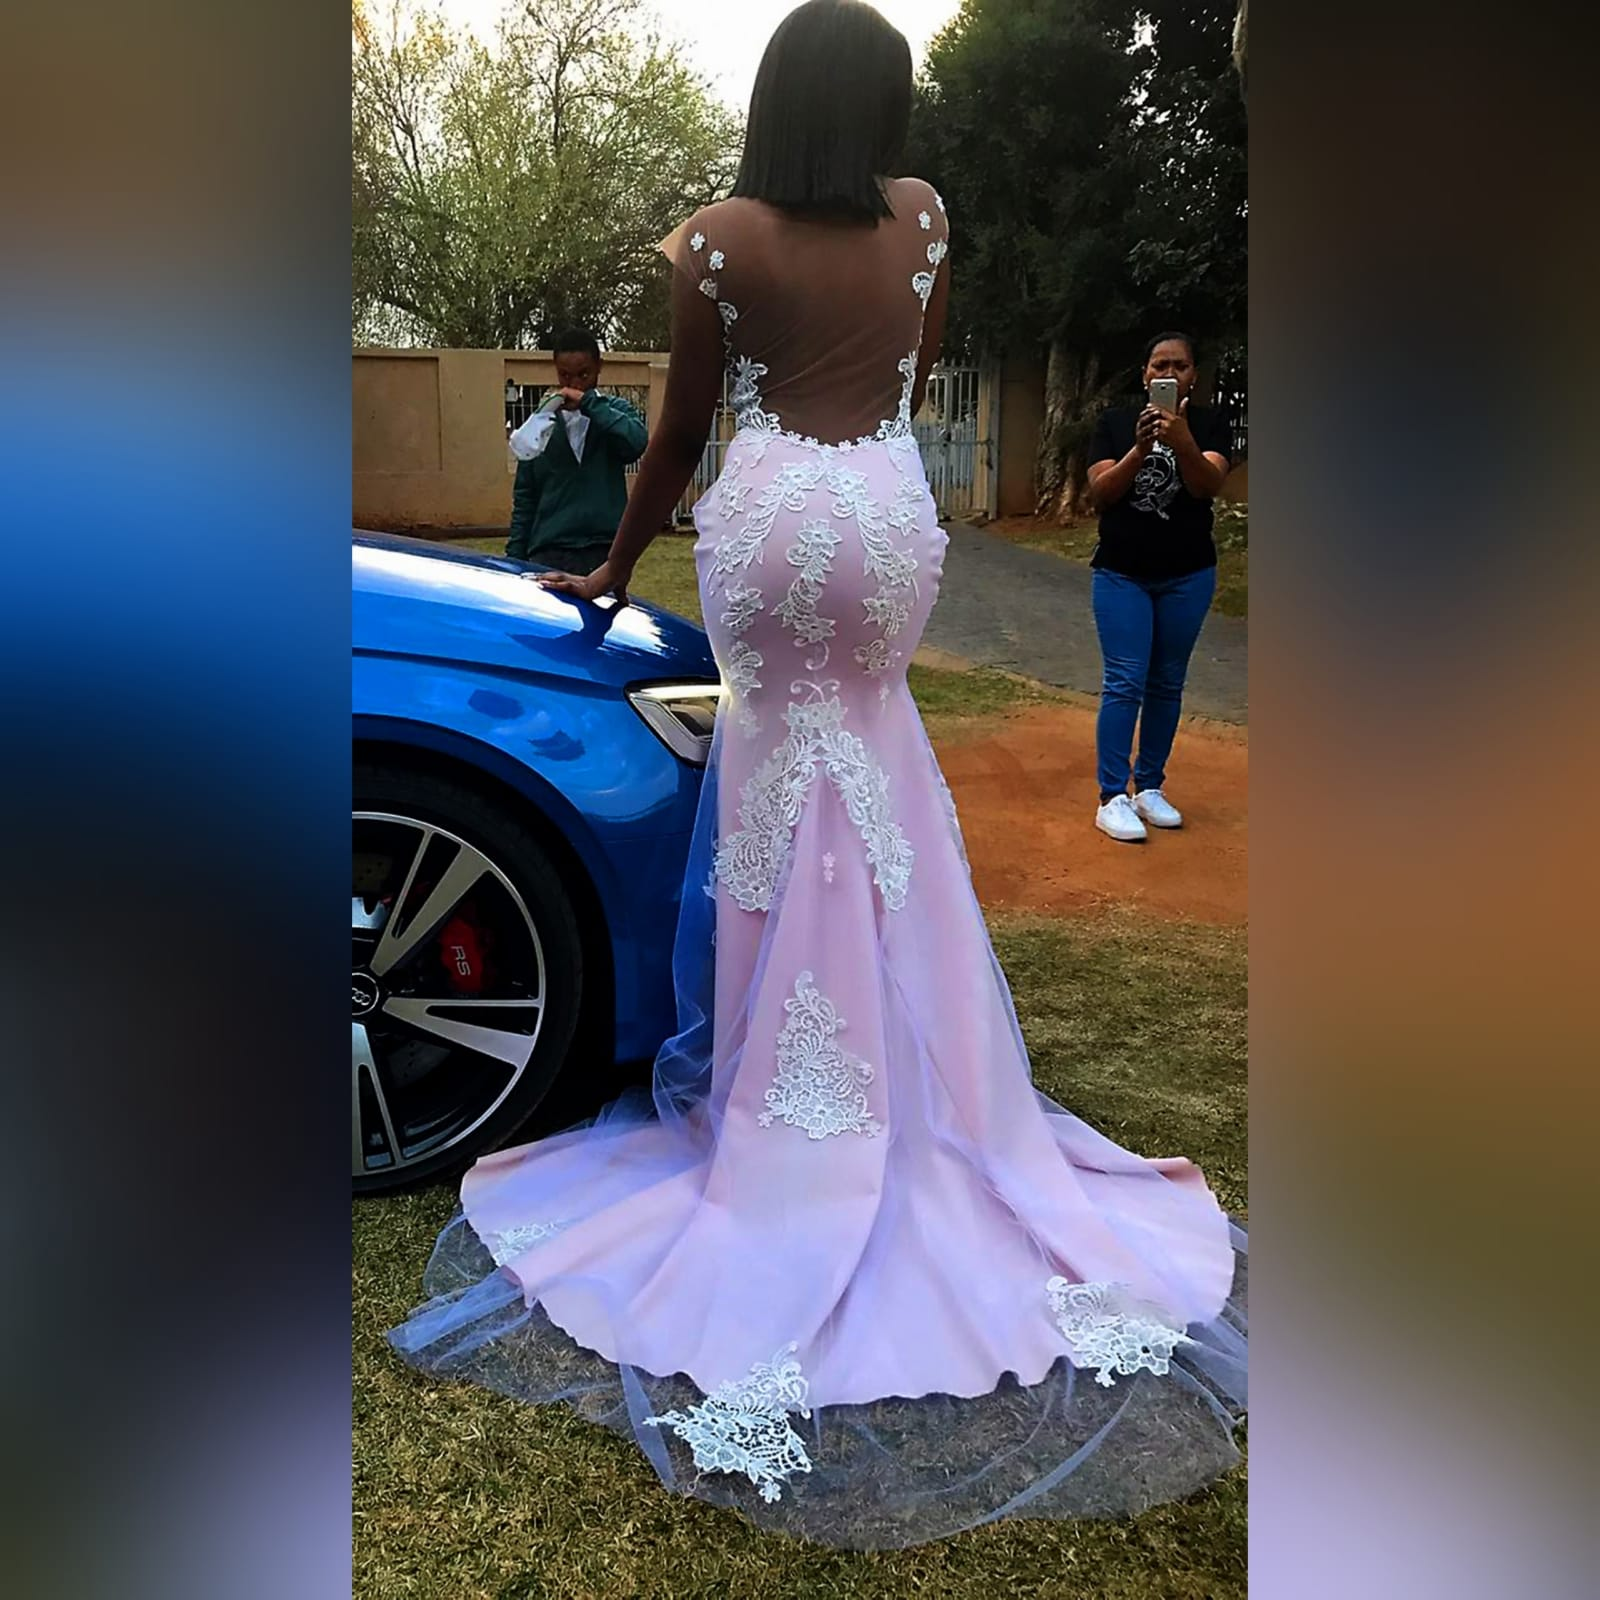 Pink and white lace soft mermaid prom dress 1 pink and white lace soft mermaid prom dress with an illusion bodice detailed with lace, an illusion open back. Bottom with an overlayer of tulle detailed with lace and a train.